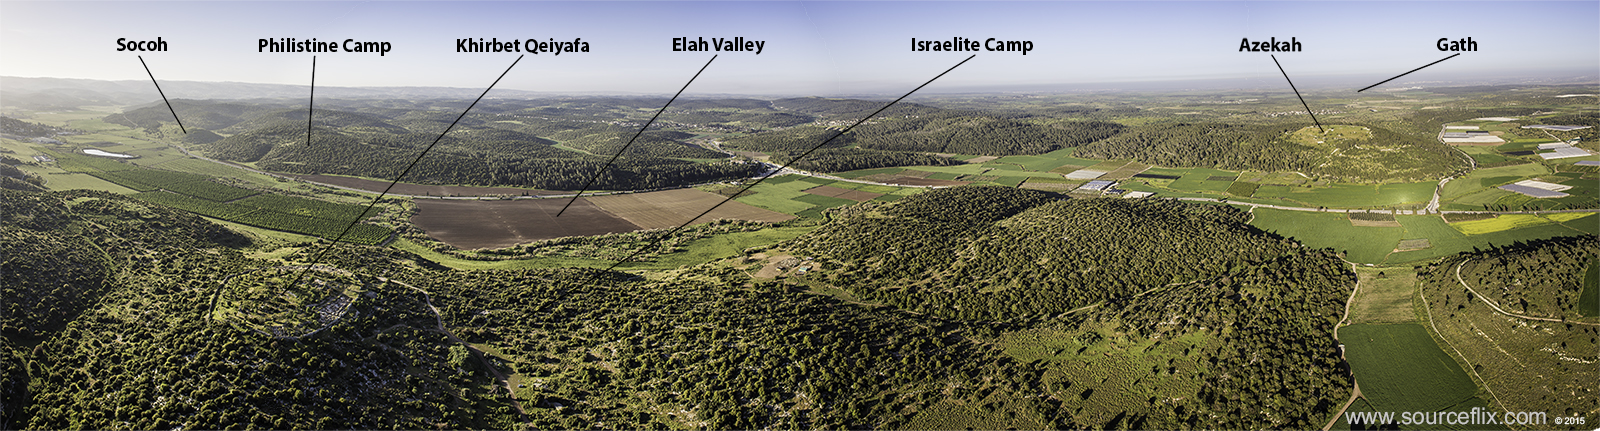 elah valley panoramic 1600 with copyright and website full res